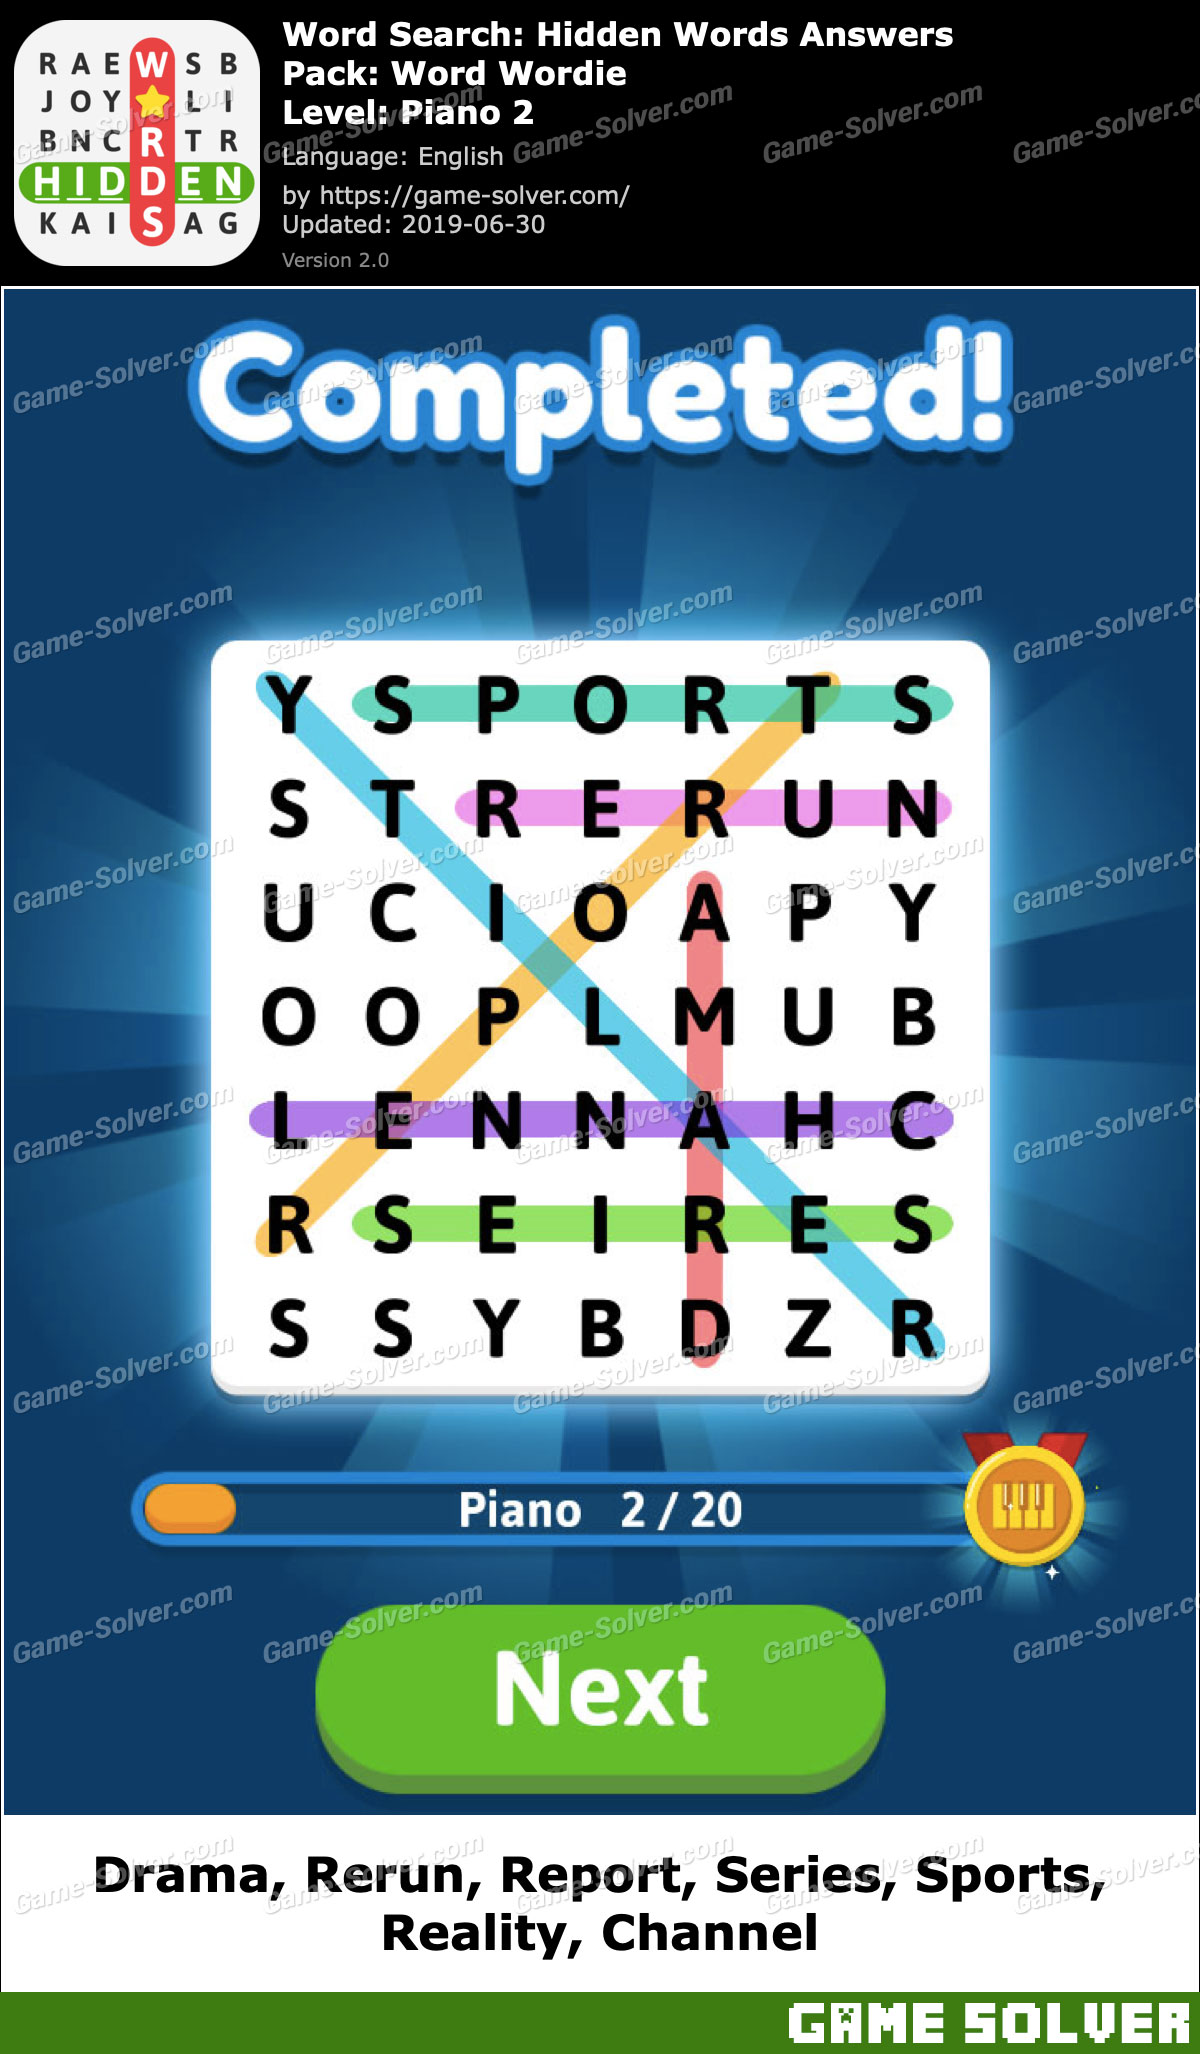 Word Search Hidden Words Word Wordie-Piano 2 Answers